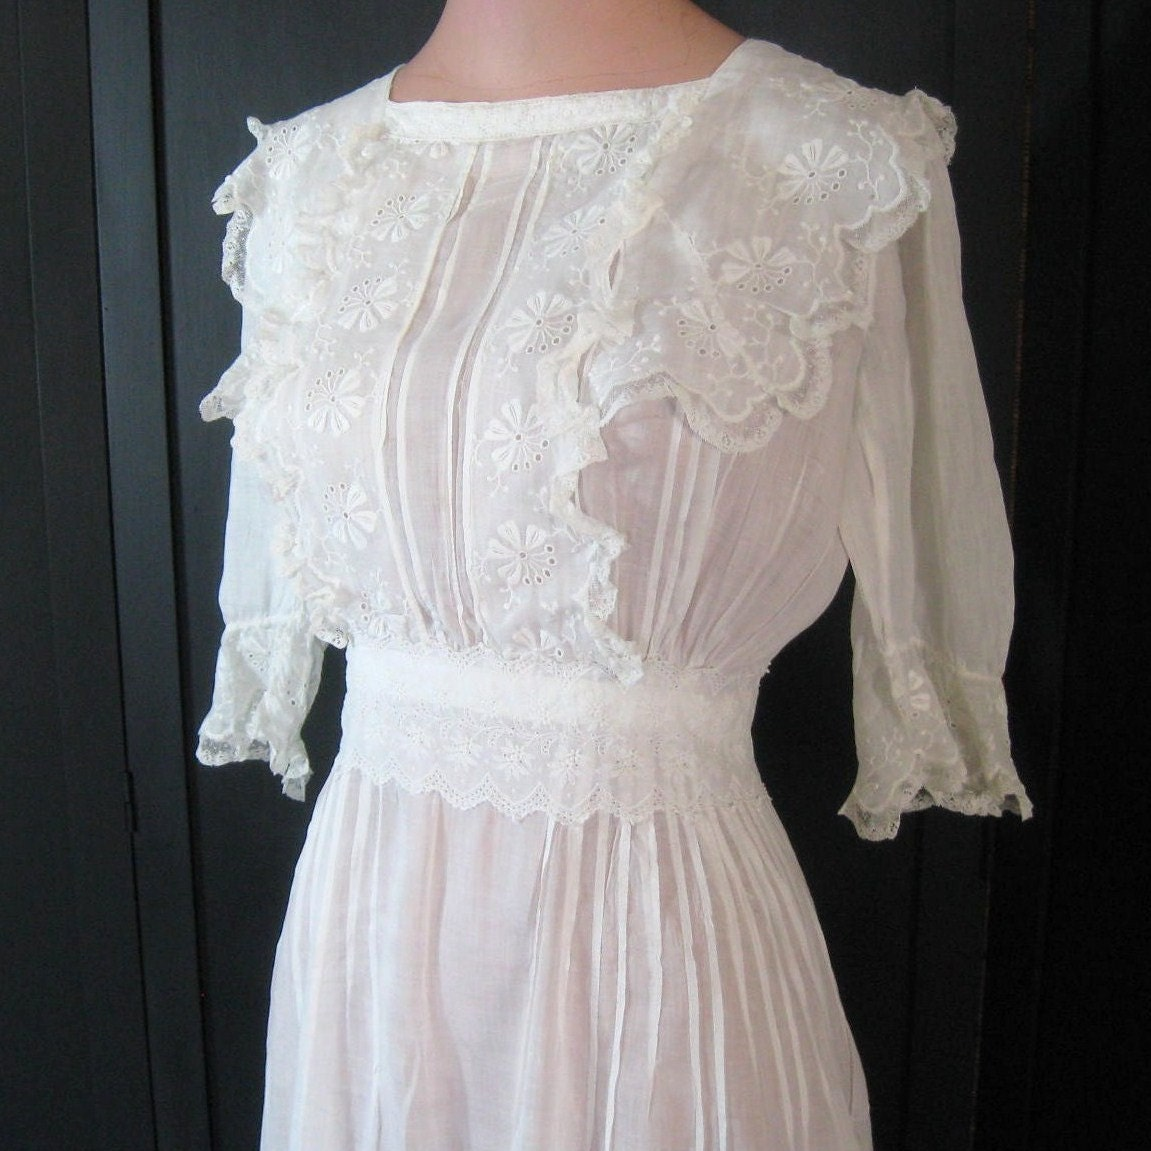 Antique Dressing Gown: Vintage Antique Edwardian Dress White Sheer By